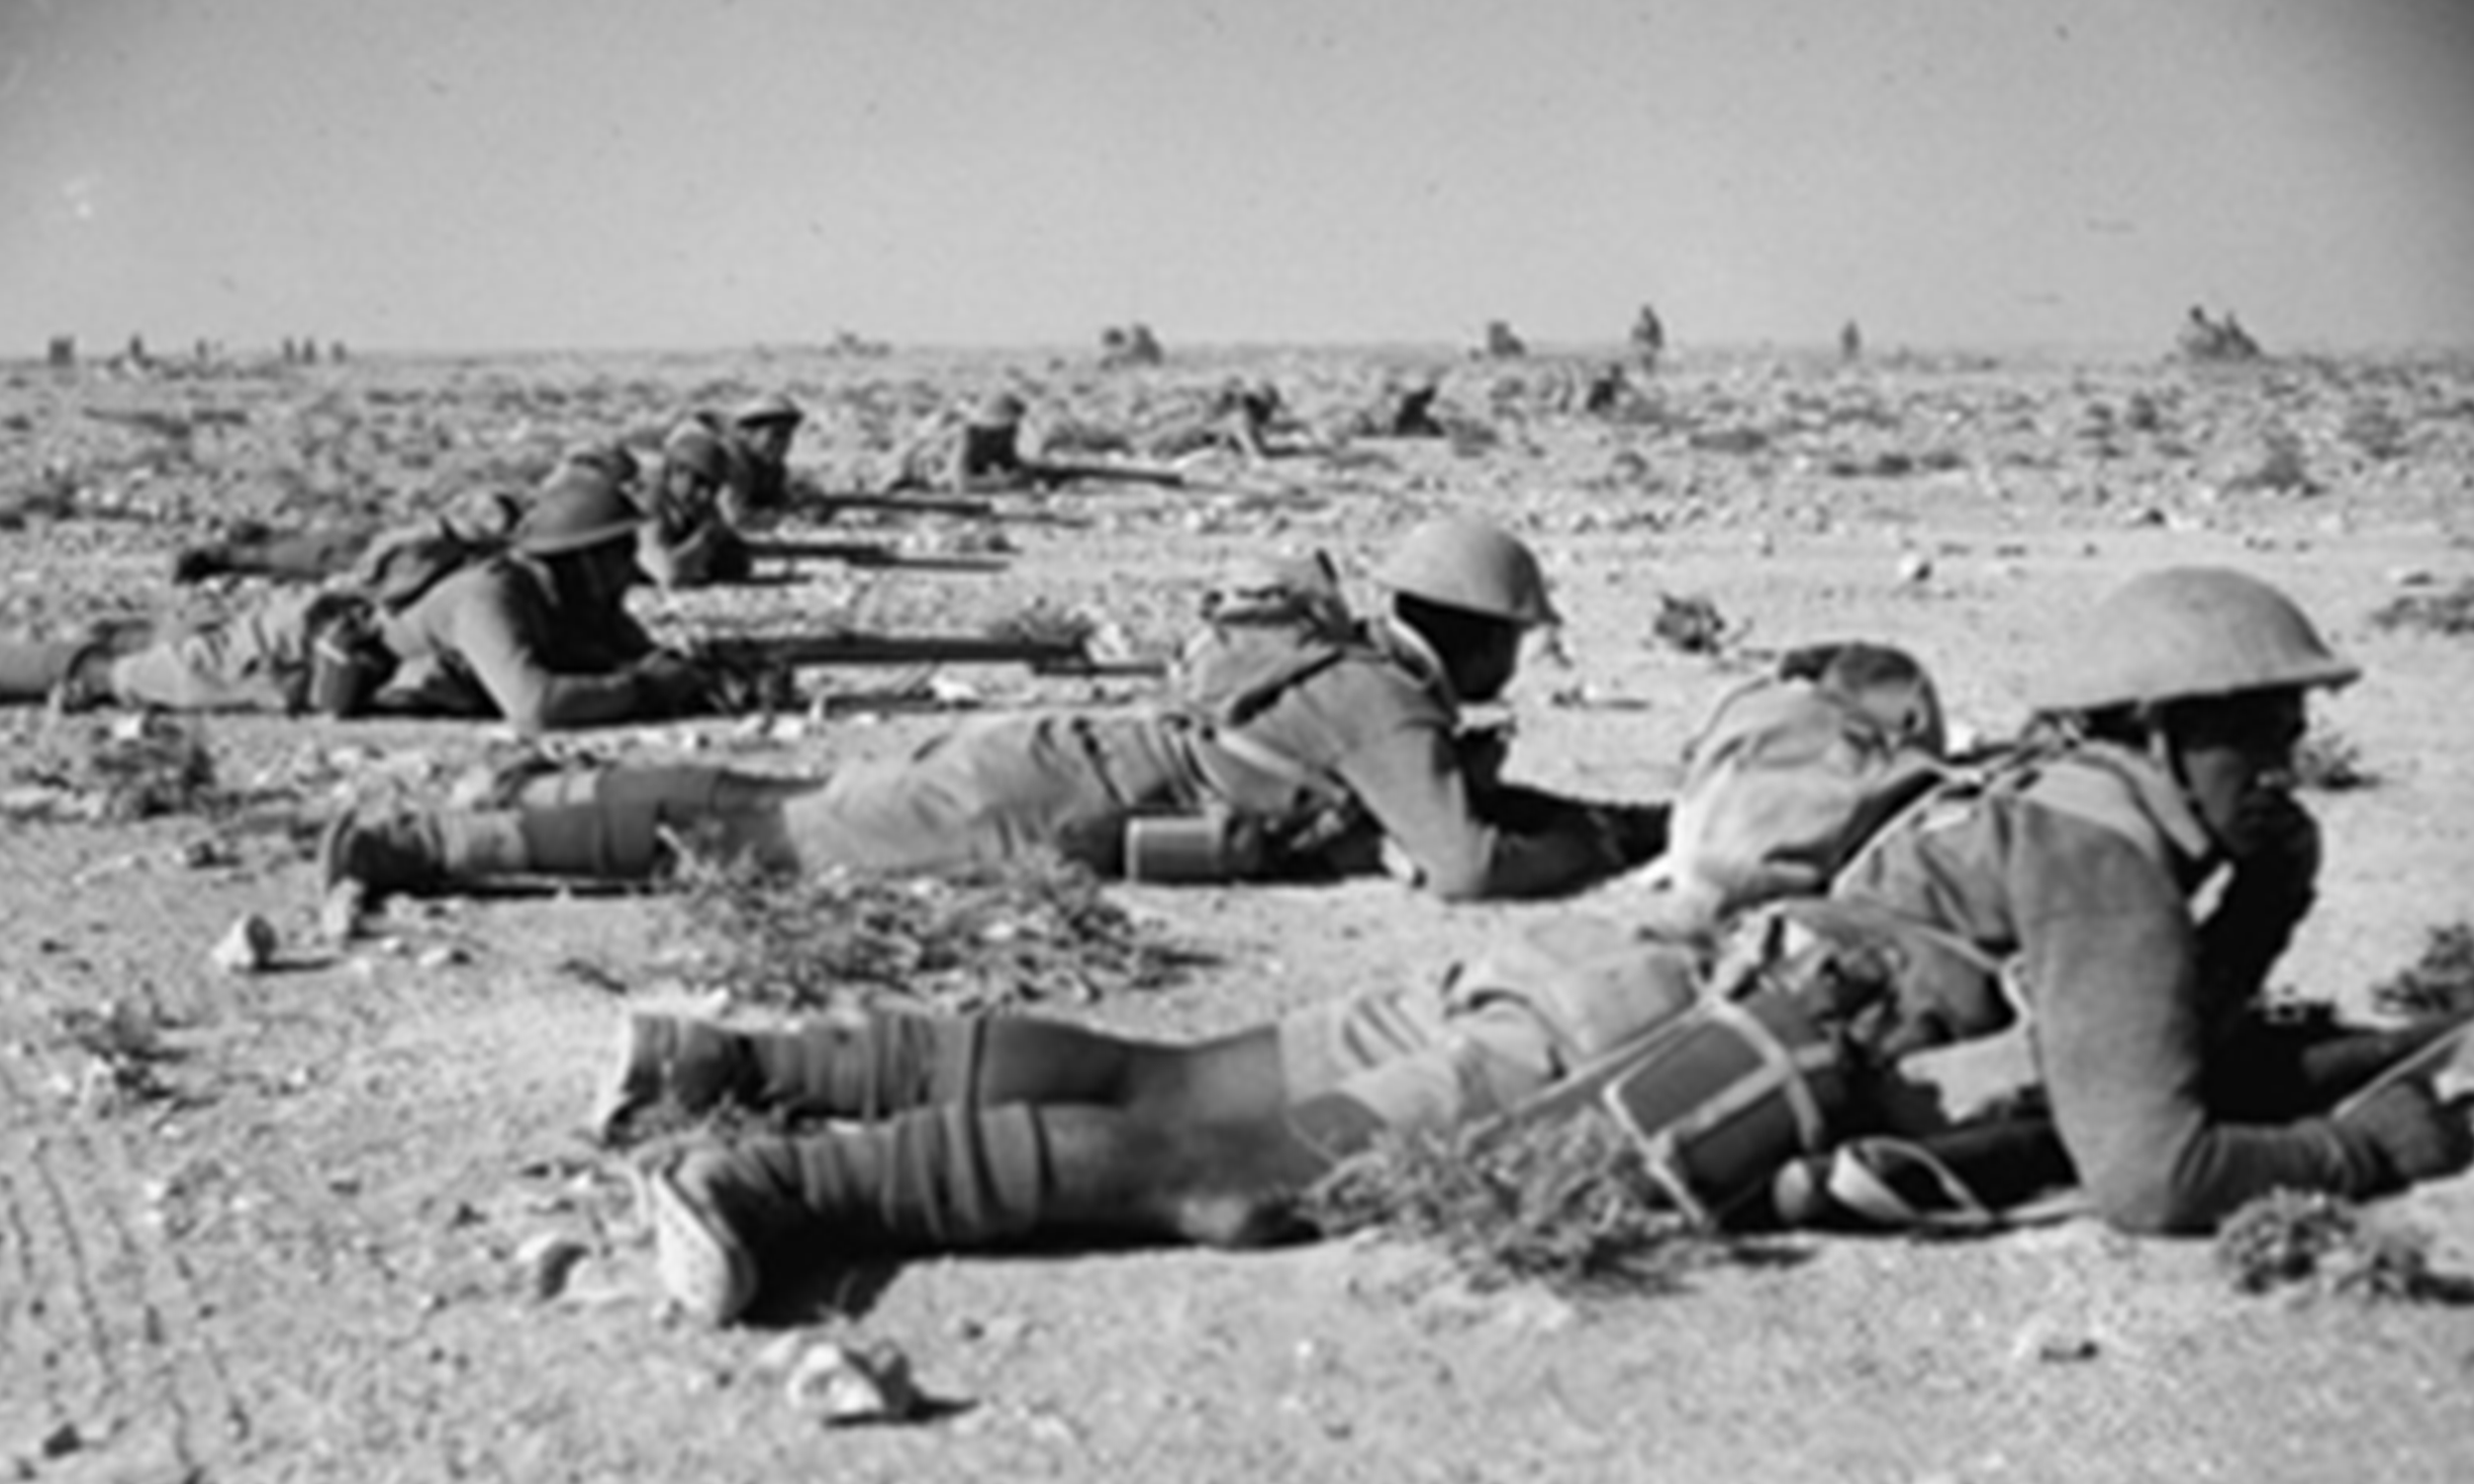 - New Zealand Infantry on Manoeuvres in Egypt, 1941 (Ref: DA-02134-F. Alexander Turnbull Library, Wellington, New Zealand)